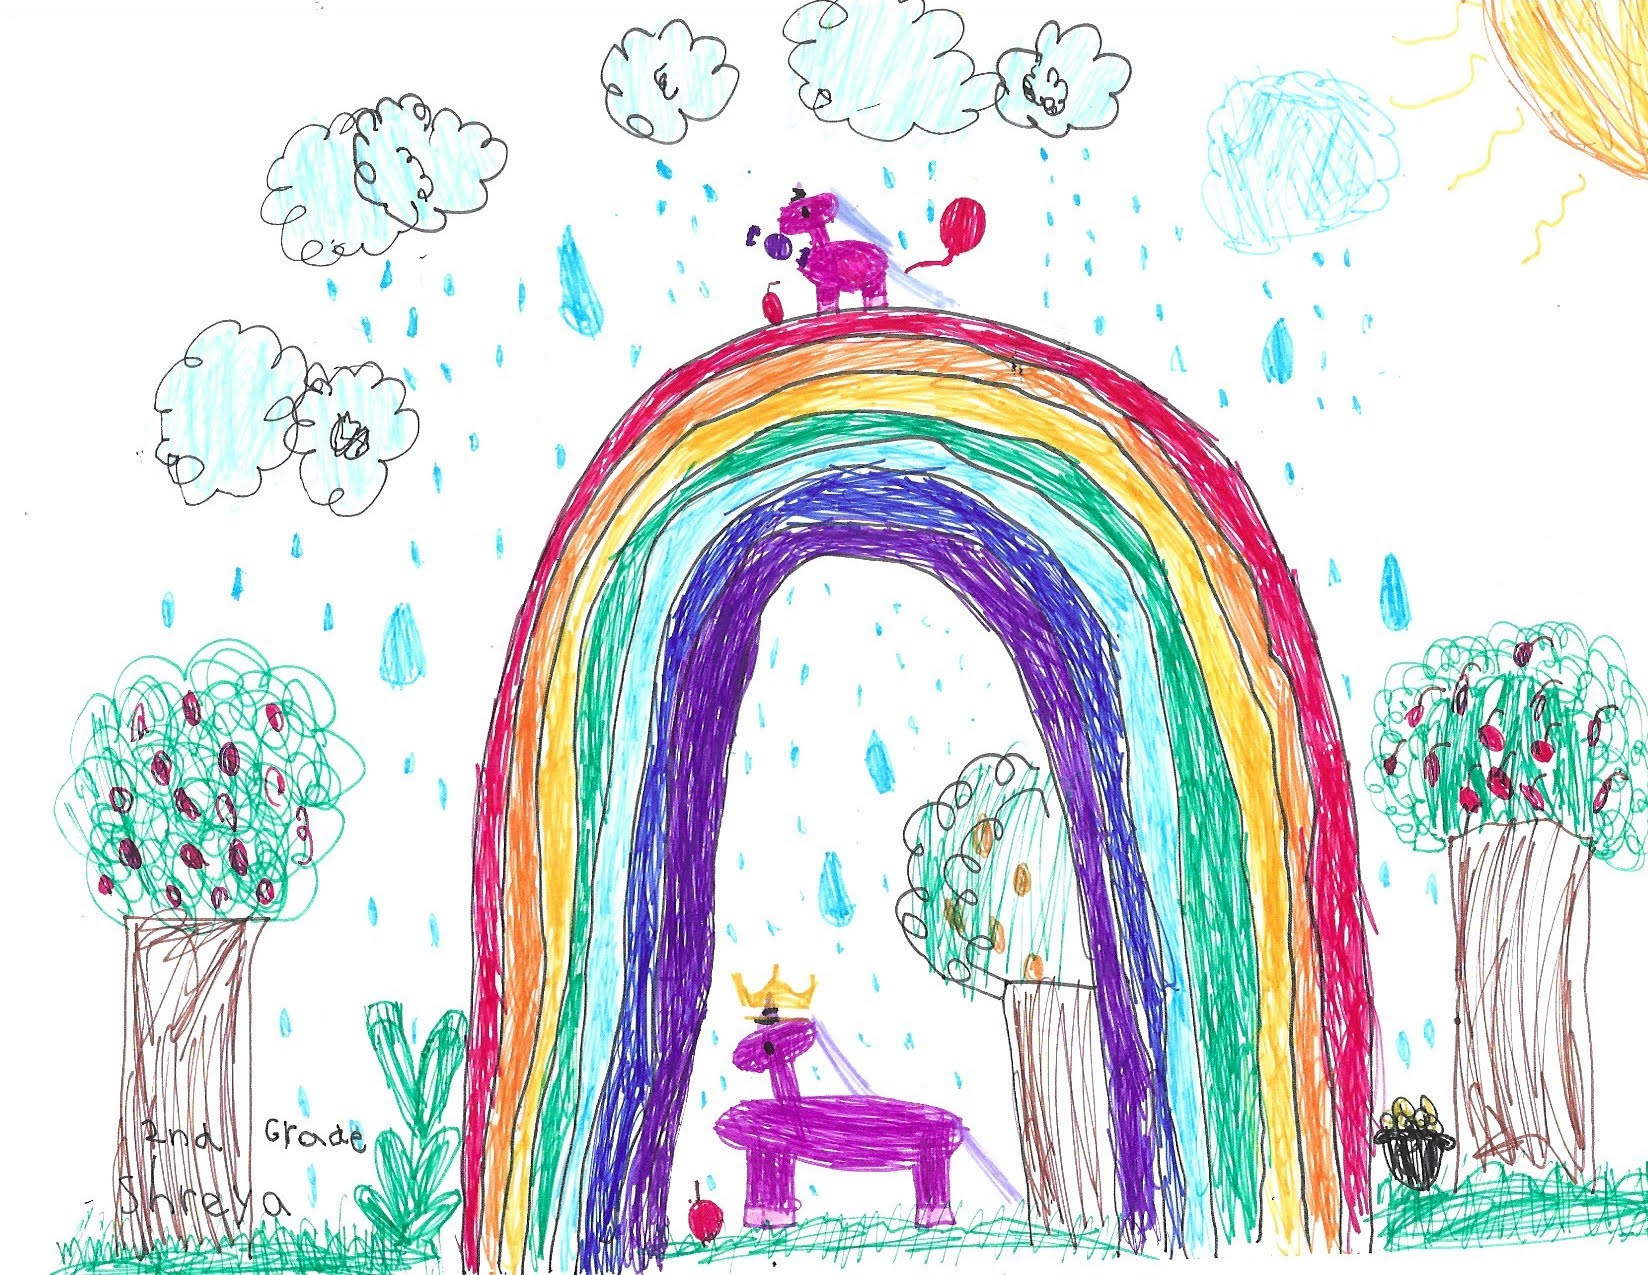 Rainbows and Unicorns Bring Joy! by Shreya Anvi Dongara